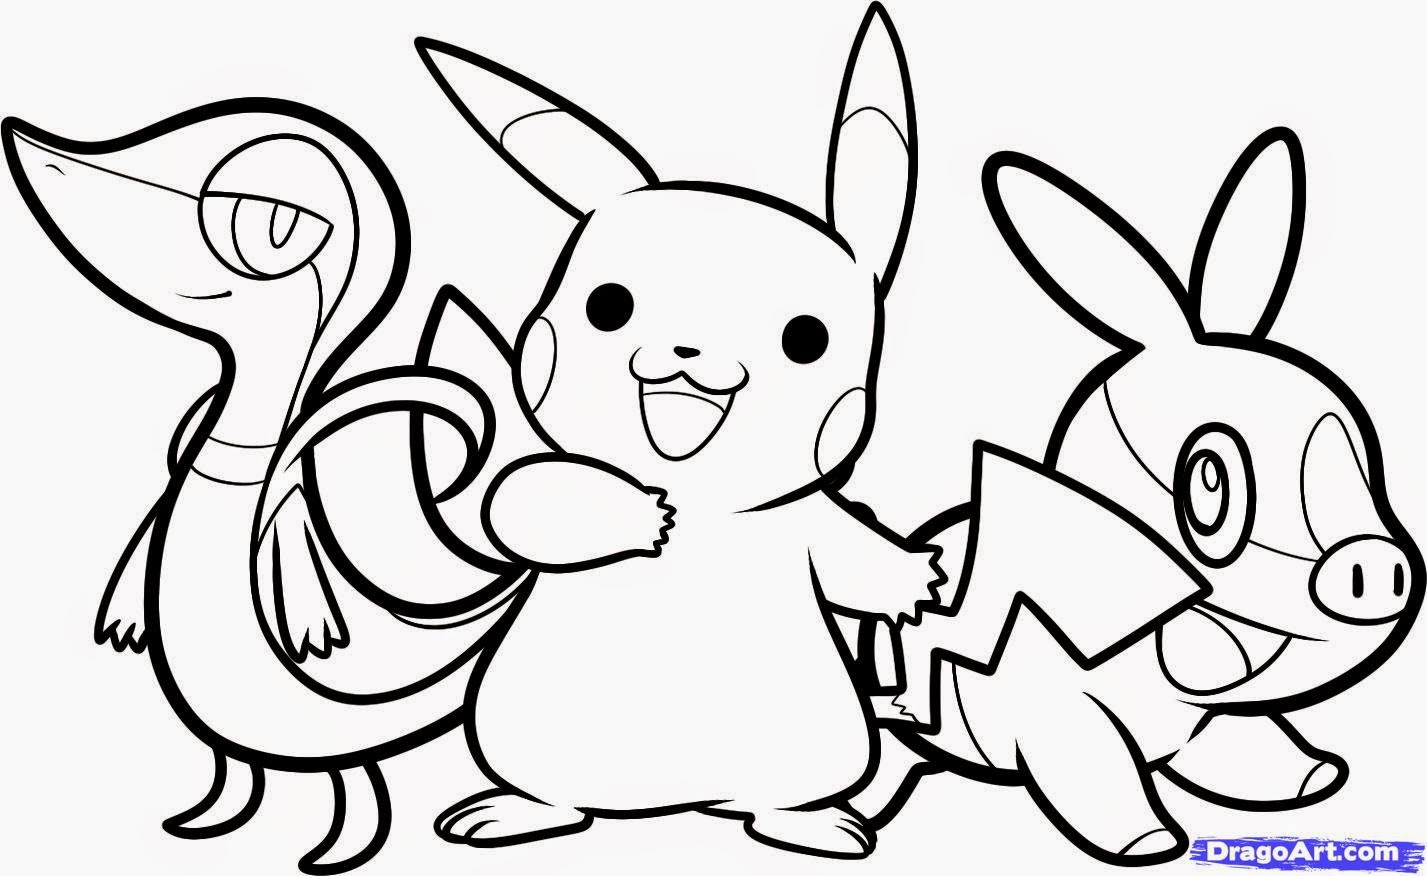 Dessin A Colorier Pokemon Gratuit